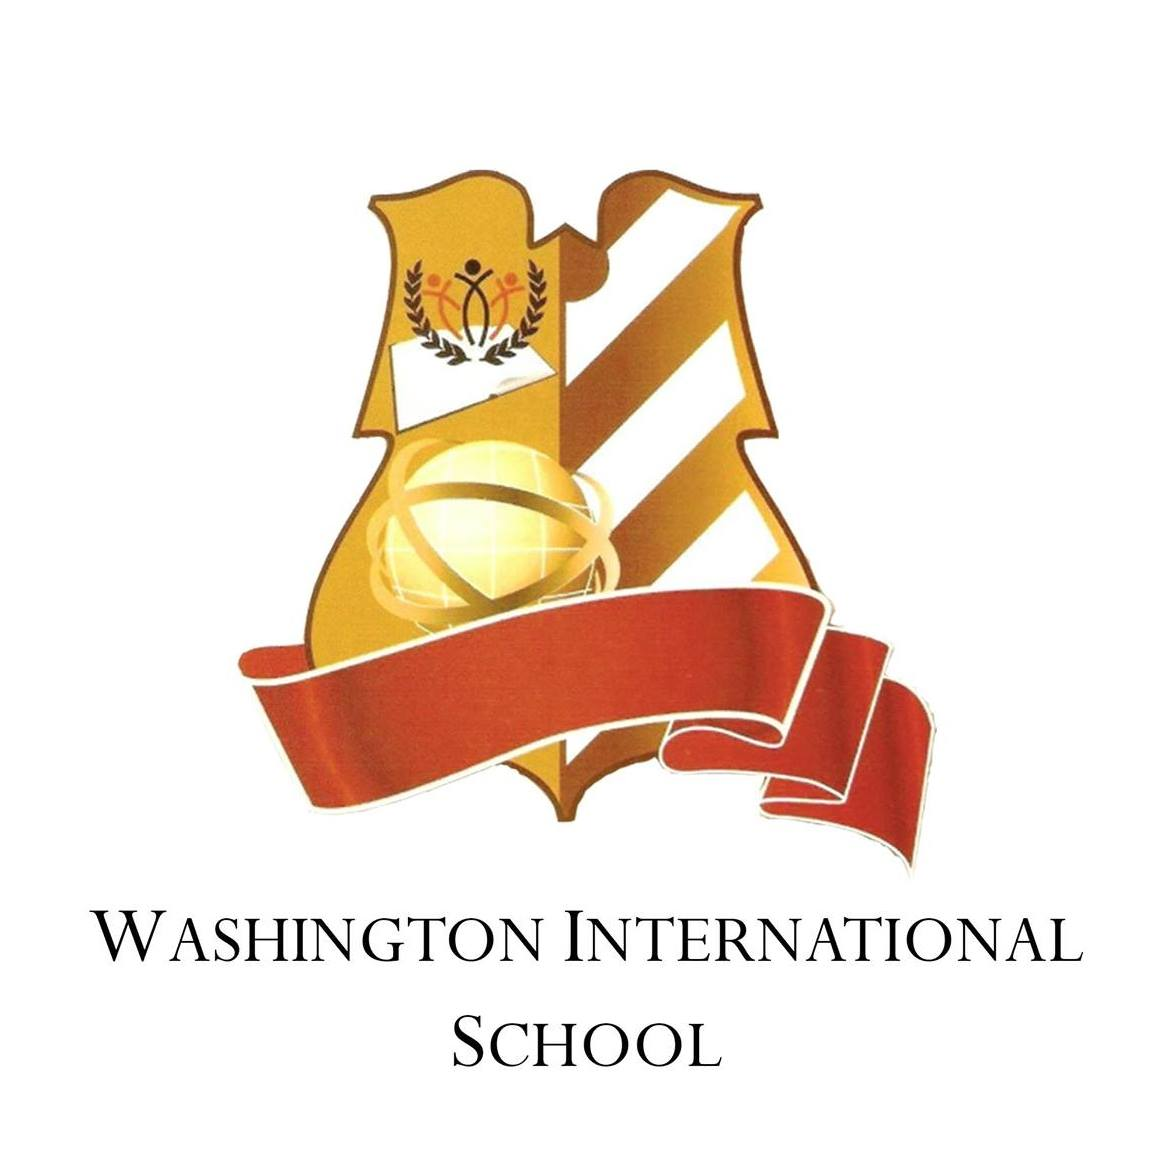 Logo10-WASHINGTON INTERNATIONAL SCHOOL